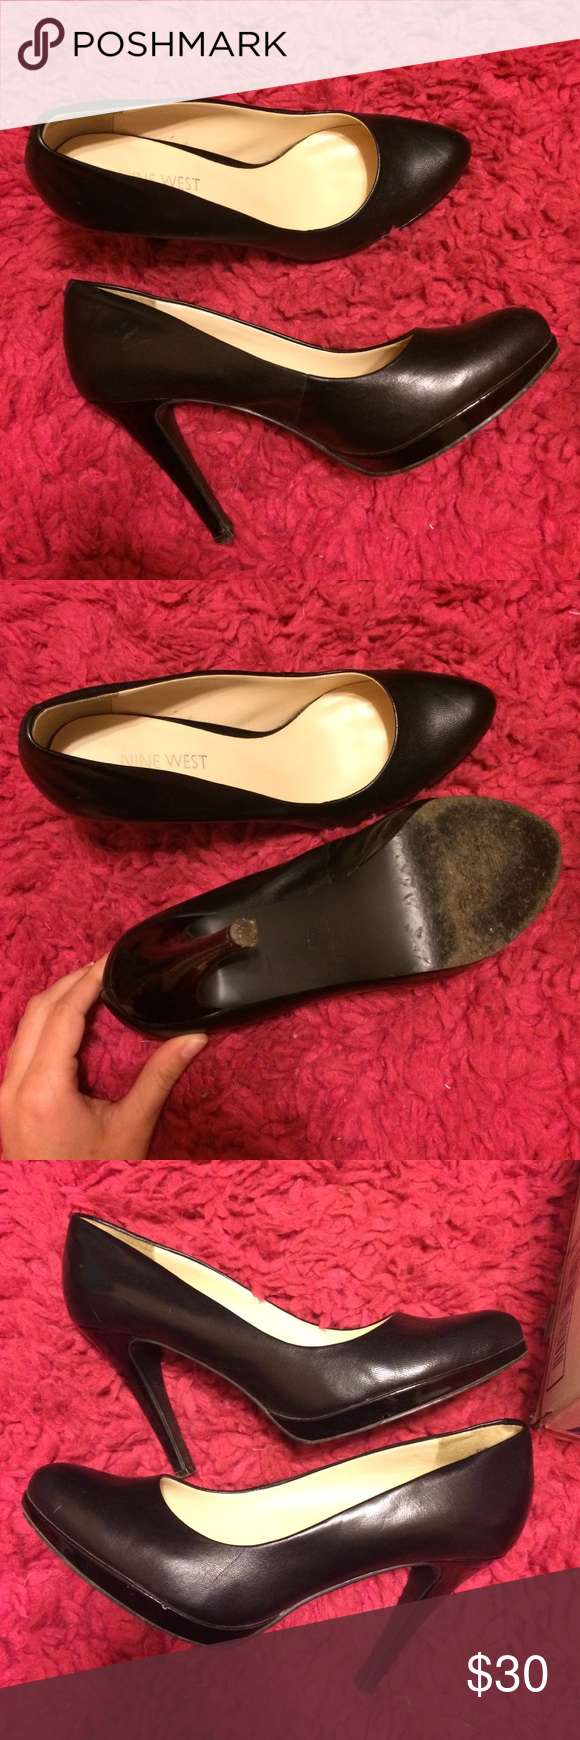 Nine West black heels Classic black pumps!!  They are beautiful and very comfortable! ❤️ Bought from another posher, I have only worn them a few times.  Very miner signs of wear, but nothing noticeable when wearing.  I try to take very good care of my shoes!!!  I think they may run a little big cause I normally wear a 6 1/2 and these are a little to big. Nine West Shoes Heels